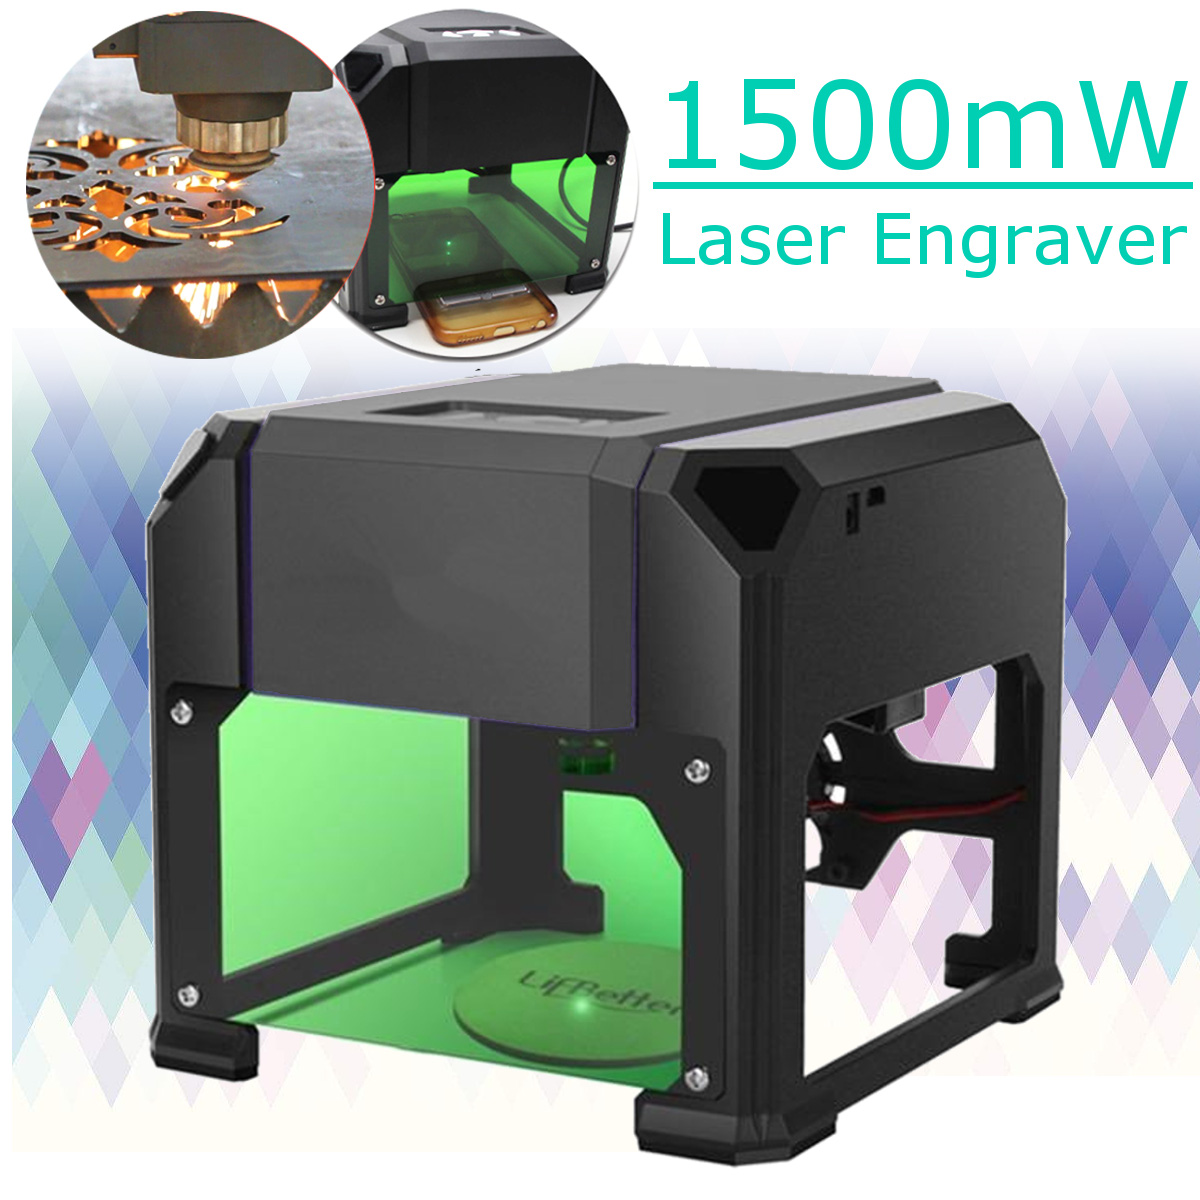 1500mw USB Desktop Laser Engraving Machine DIY Logo Marking Engraver CNC Laser Carving Machine 80x80mm Engraving Range joseph sheridan le fanu willing to die